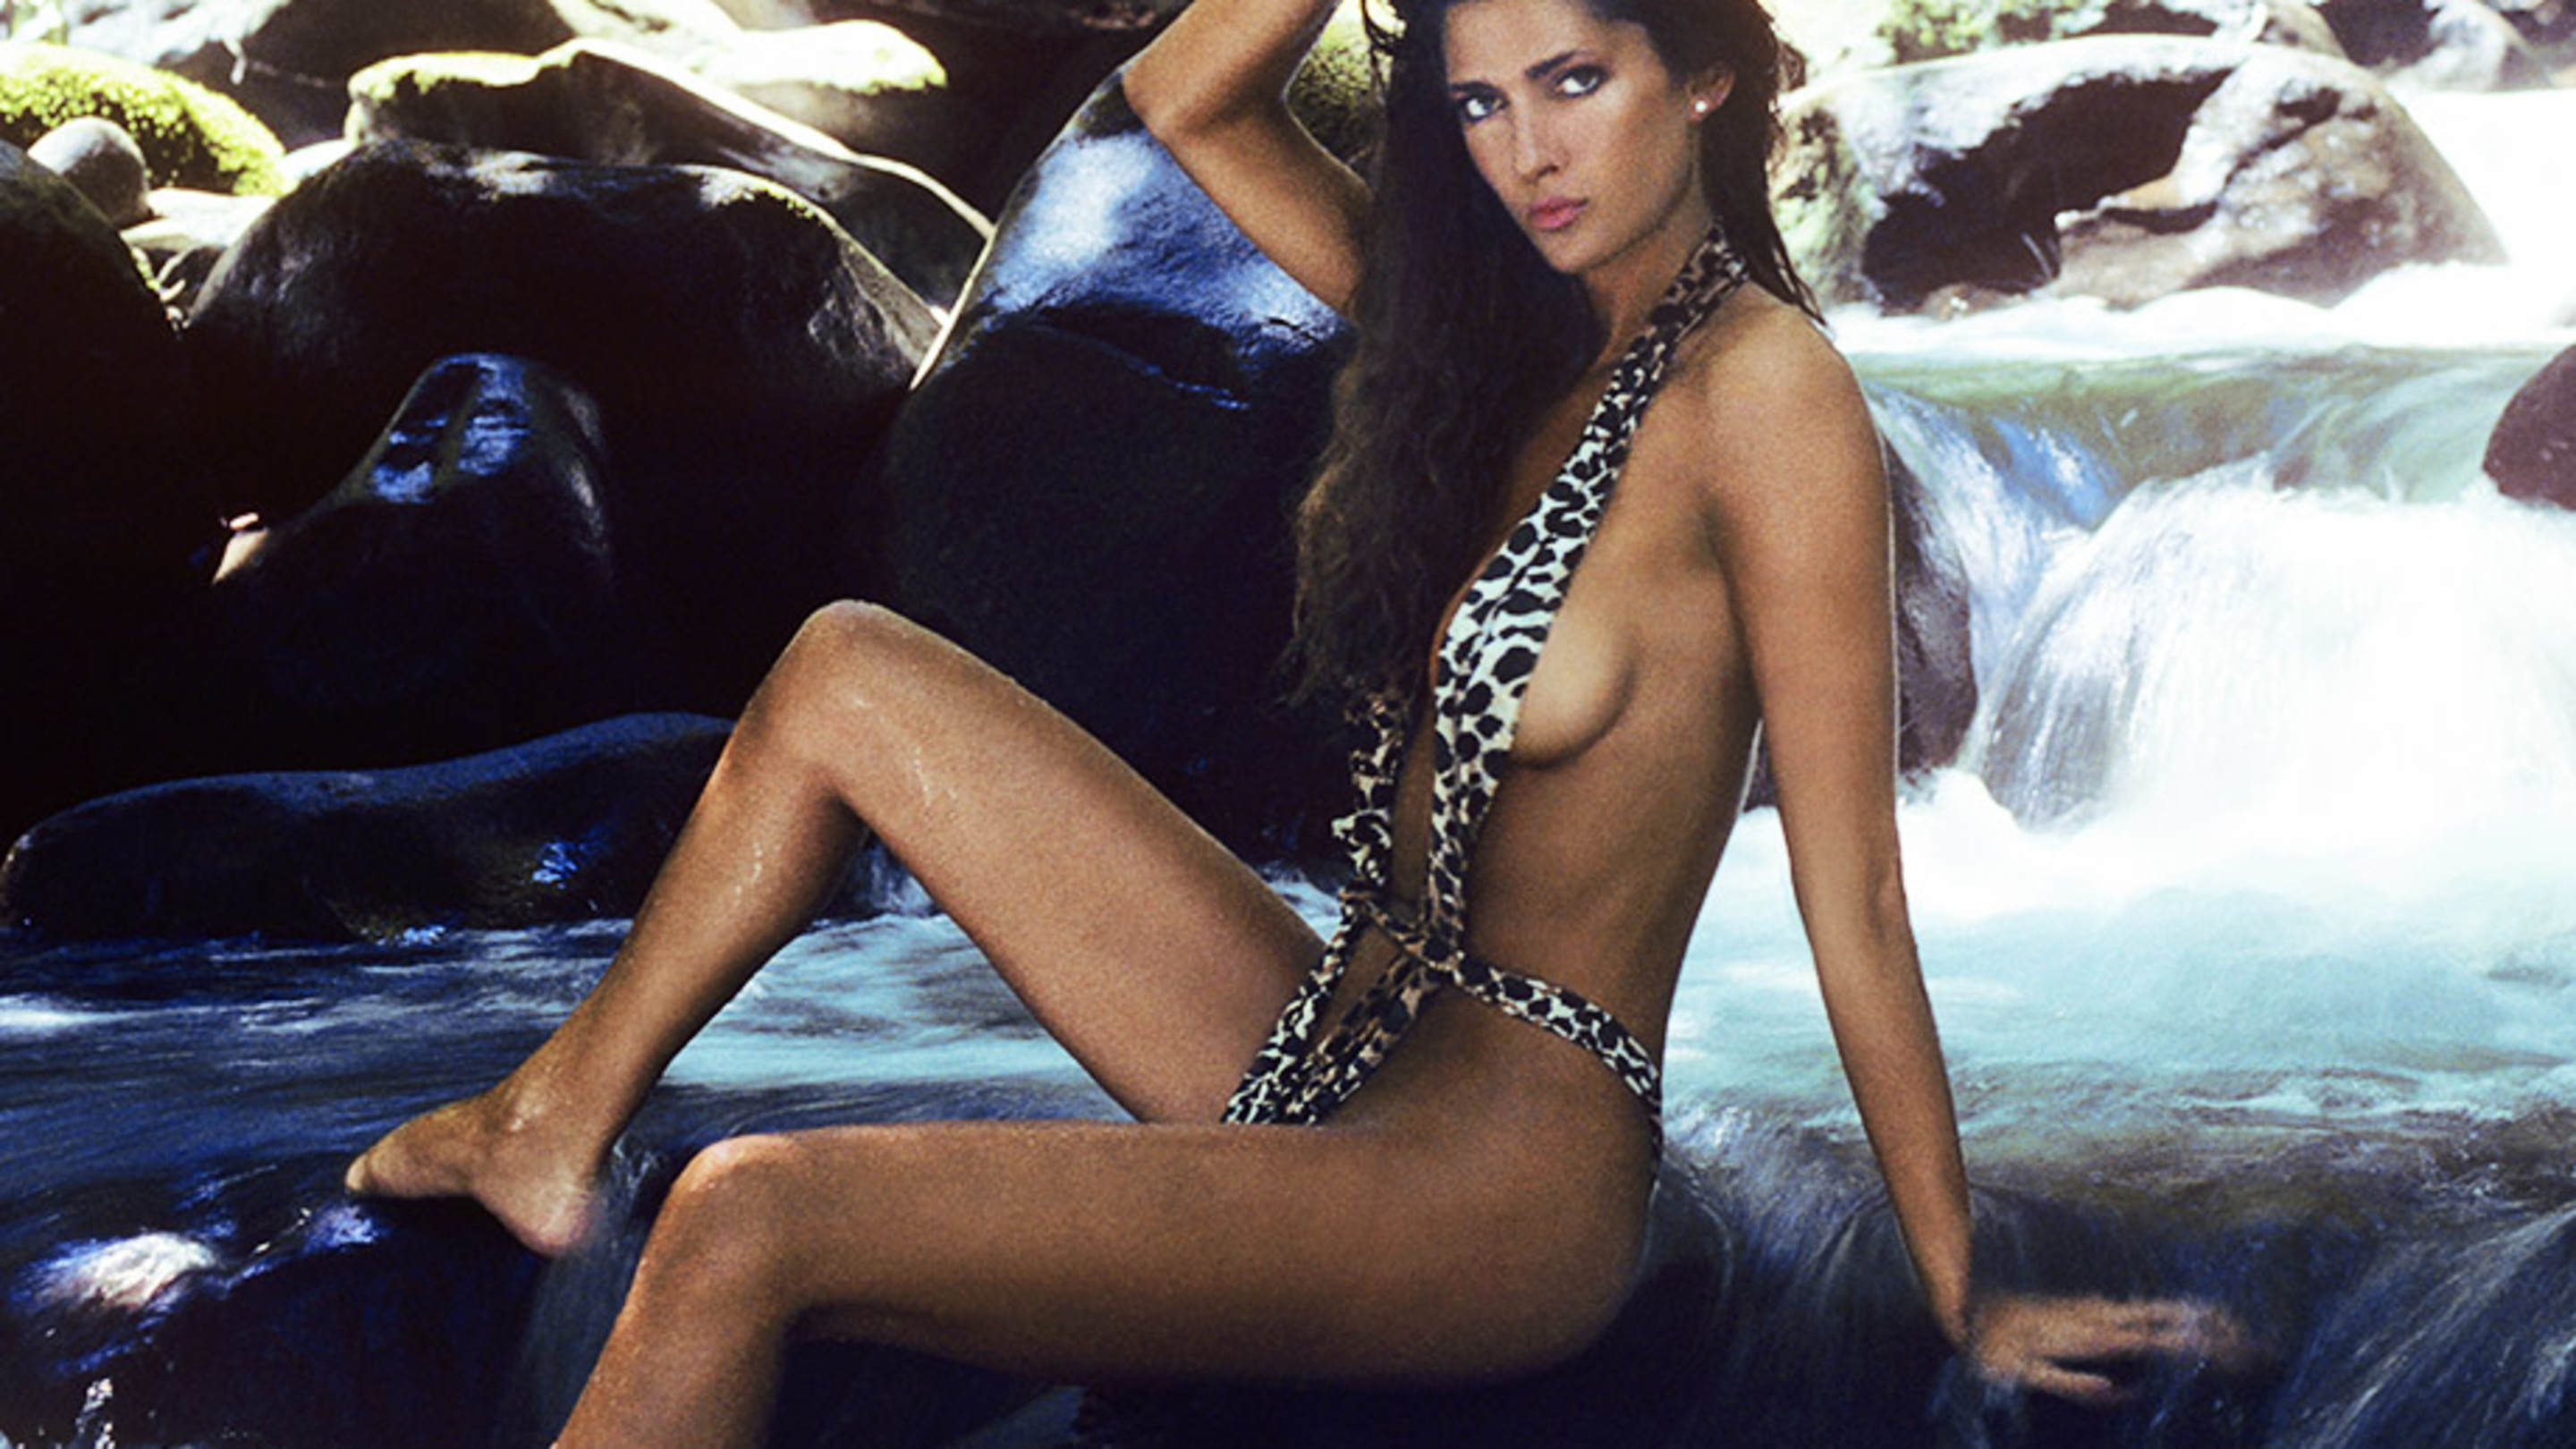 Howard Stern Naked Girls the first transgender woman to pose naked in playboy